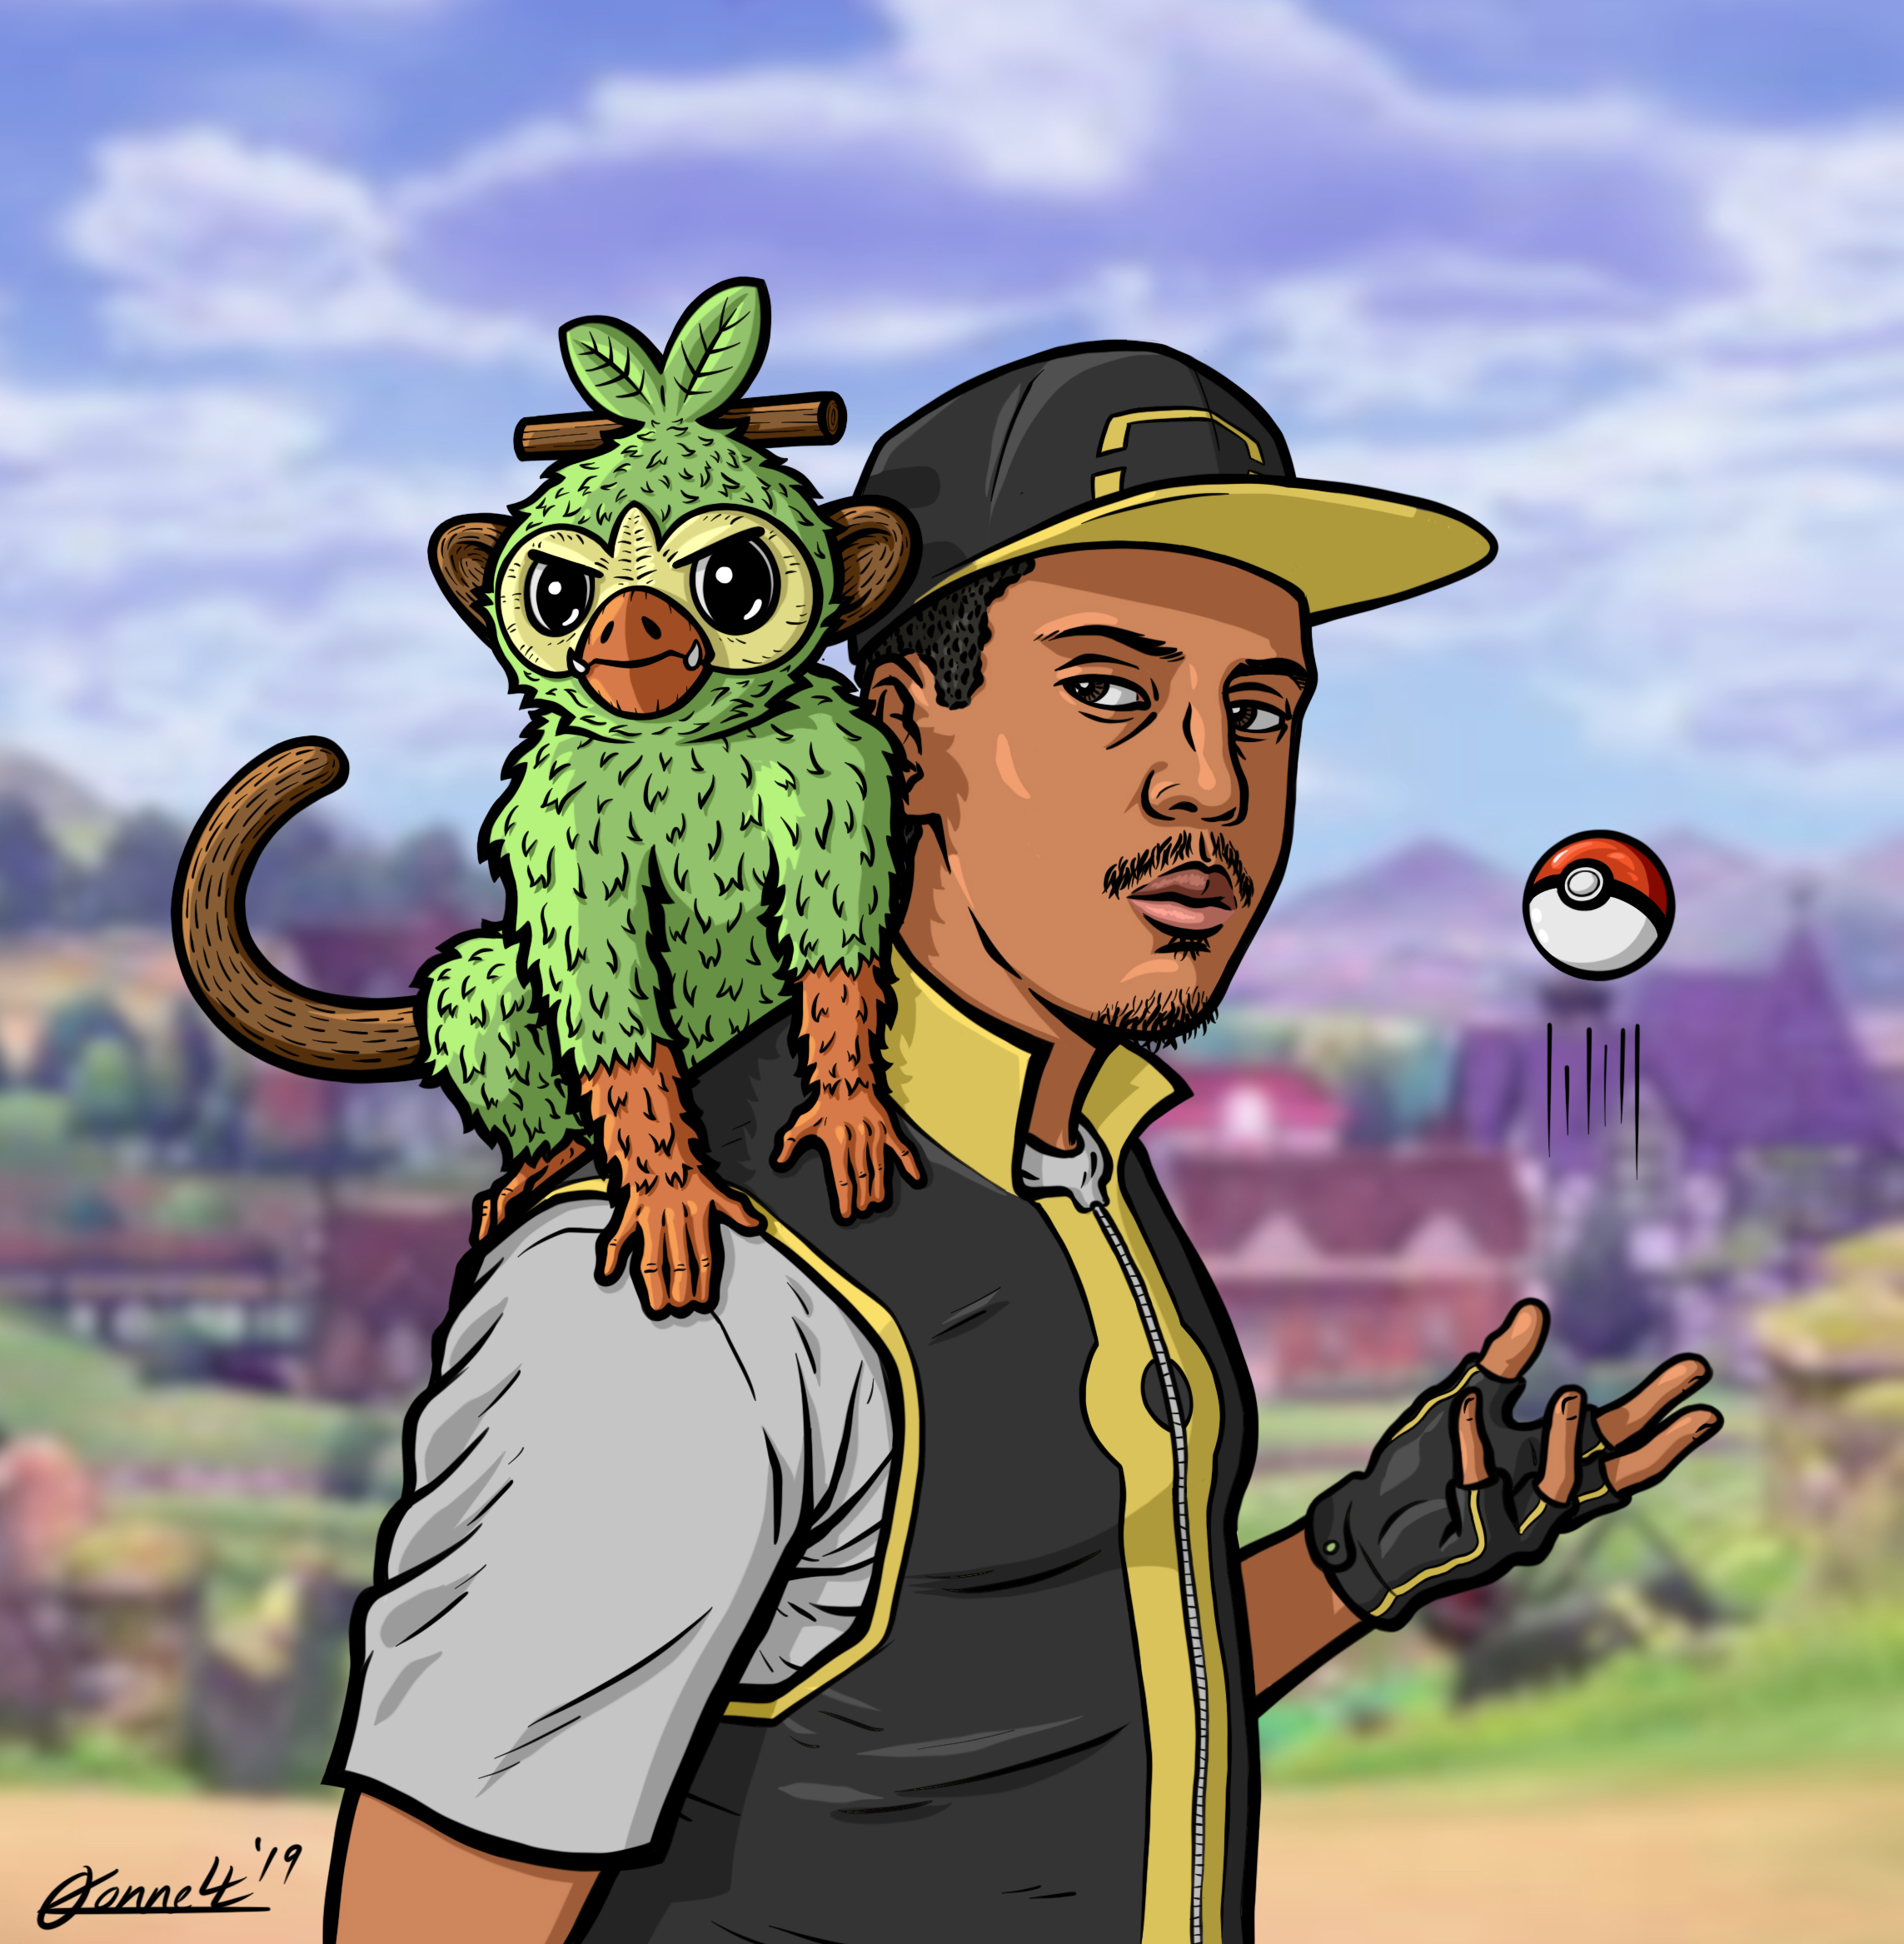 Grookey Gang Jorge O Connell Illustration Has been added to your cart. grookey gang jorge o connell